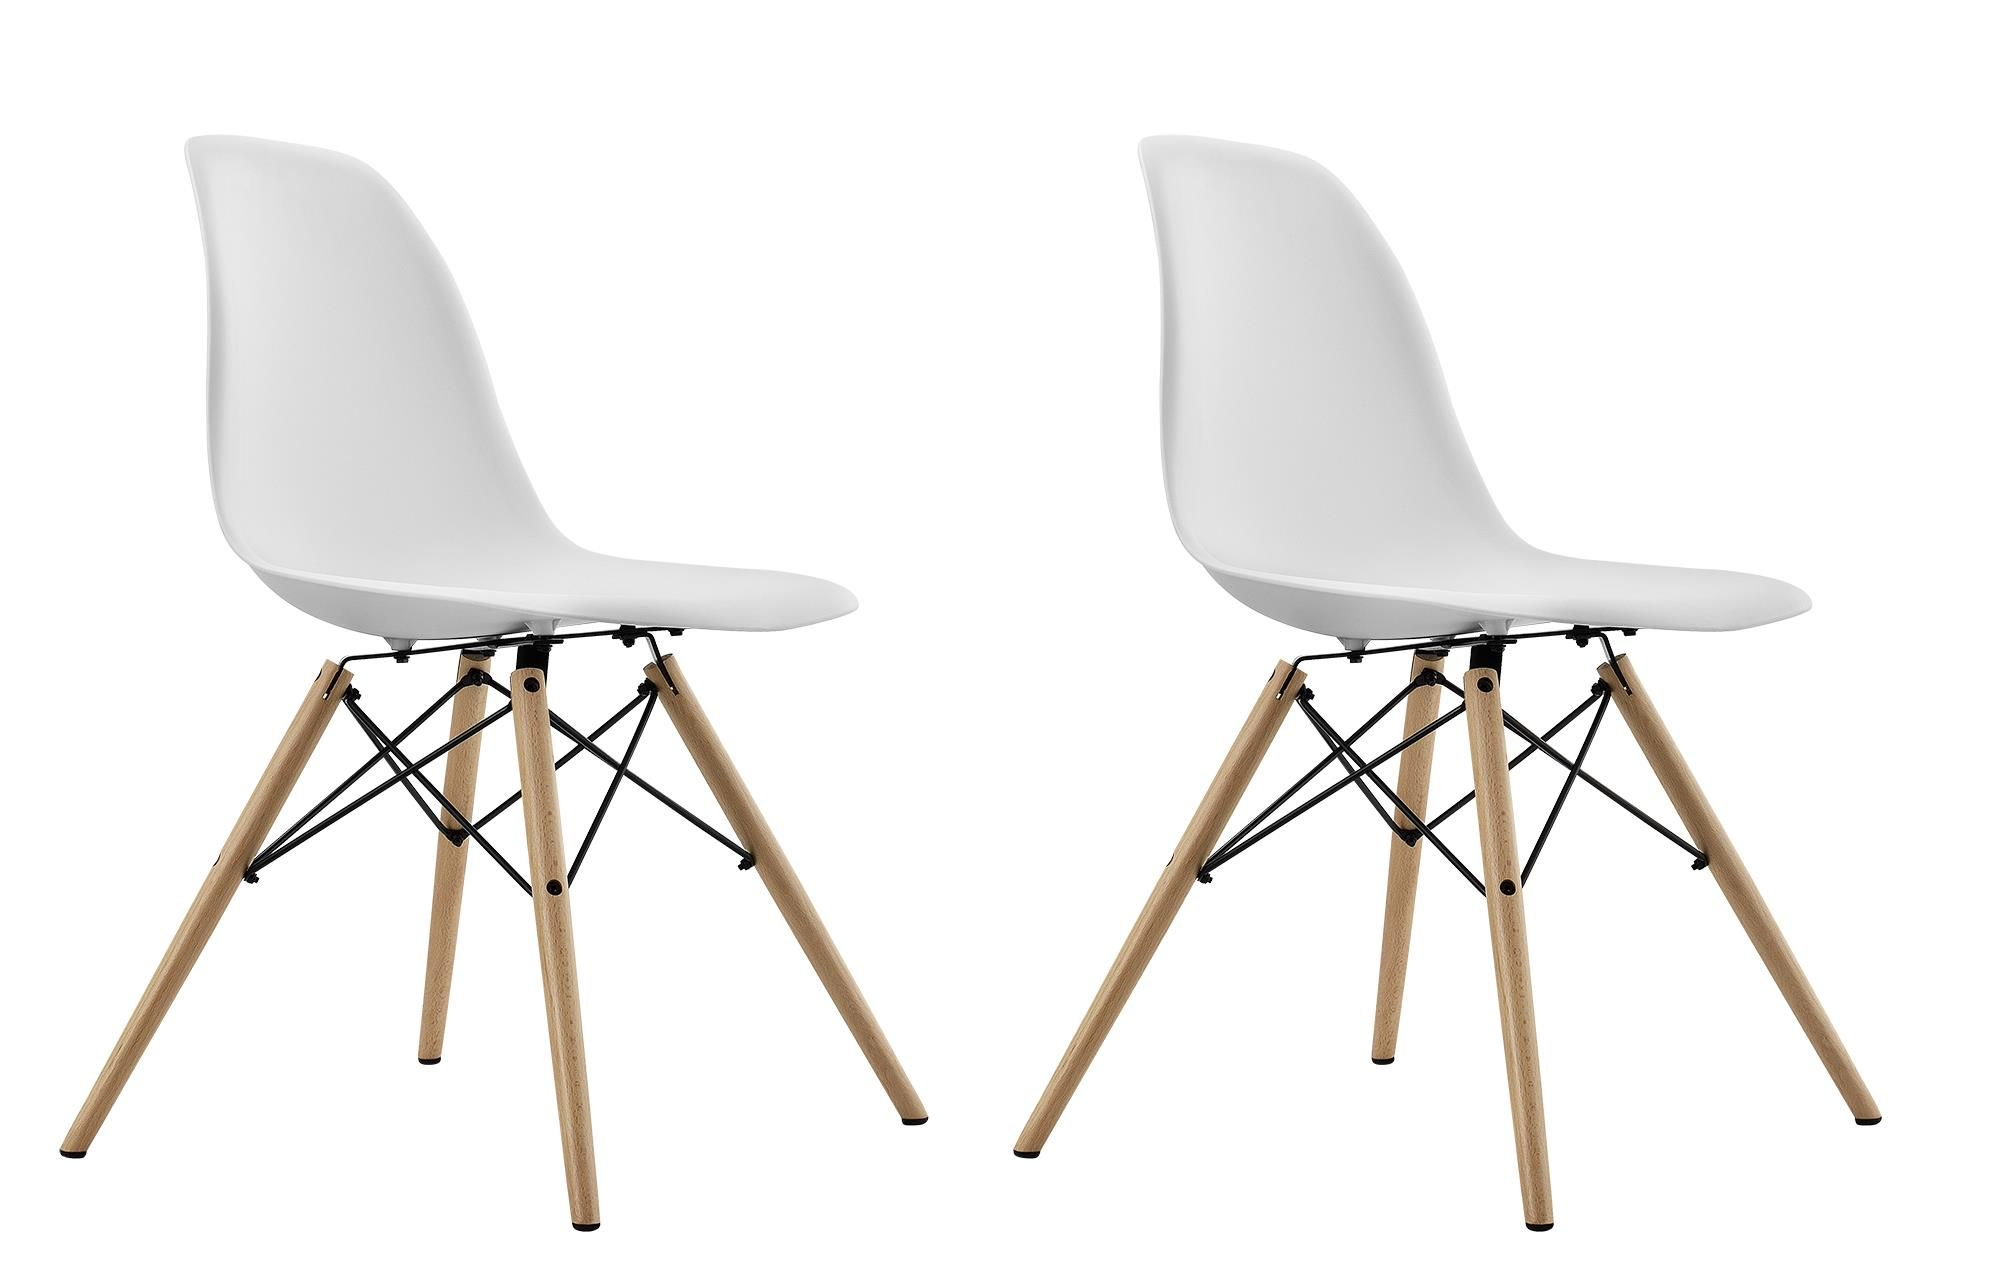 The Mid Century Modern Molded Chair With Wood Leg Is Stylish